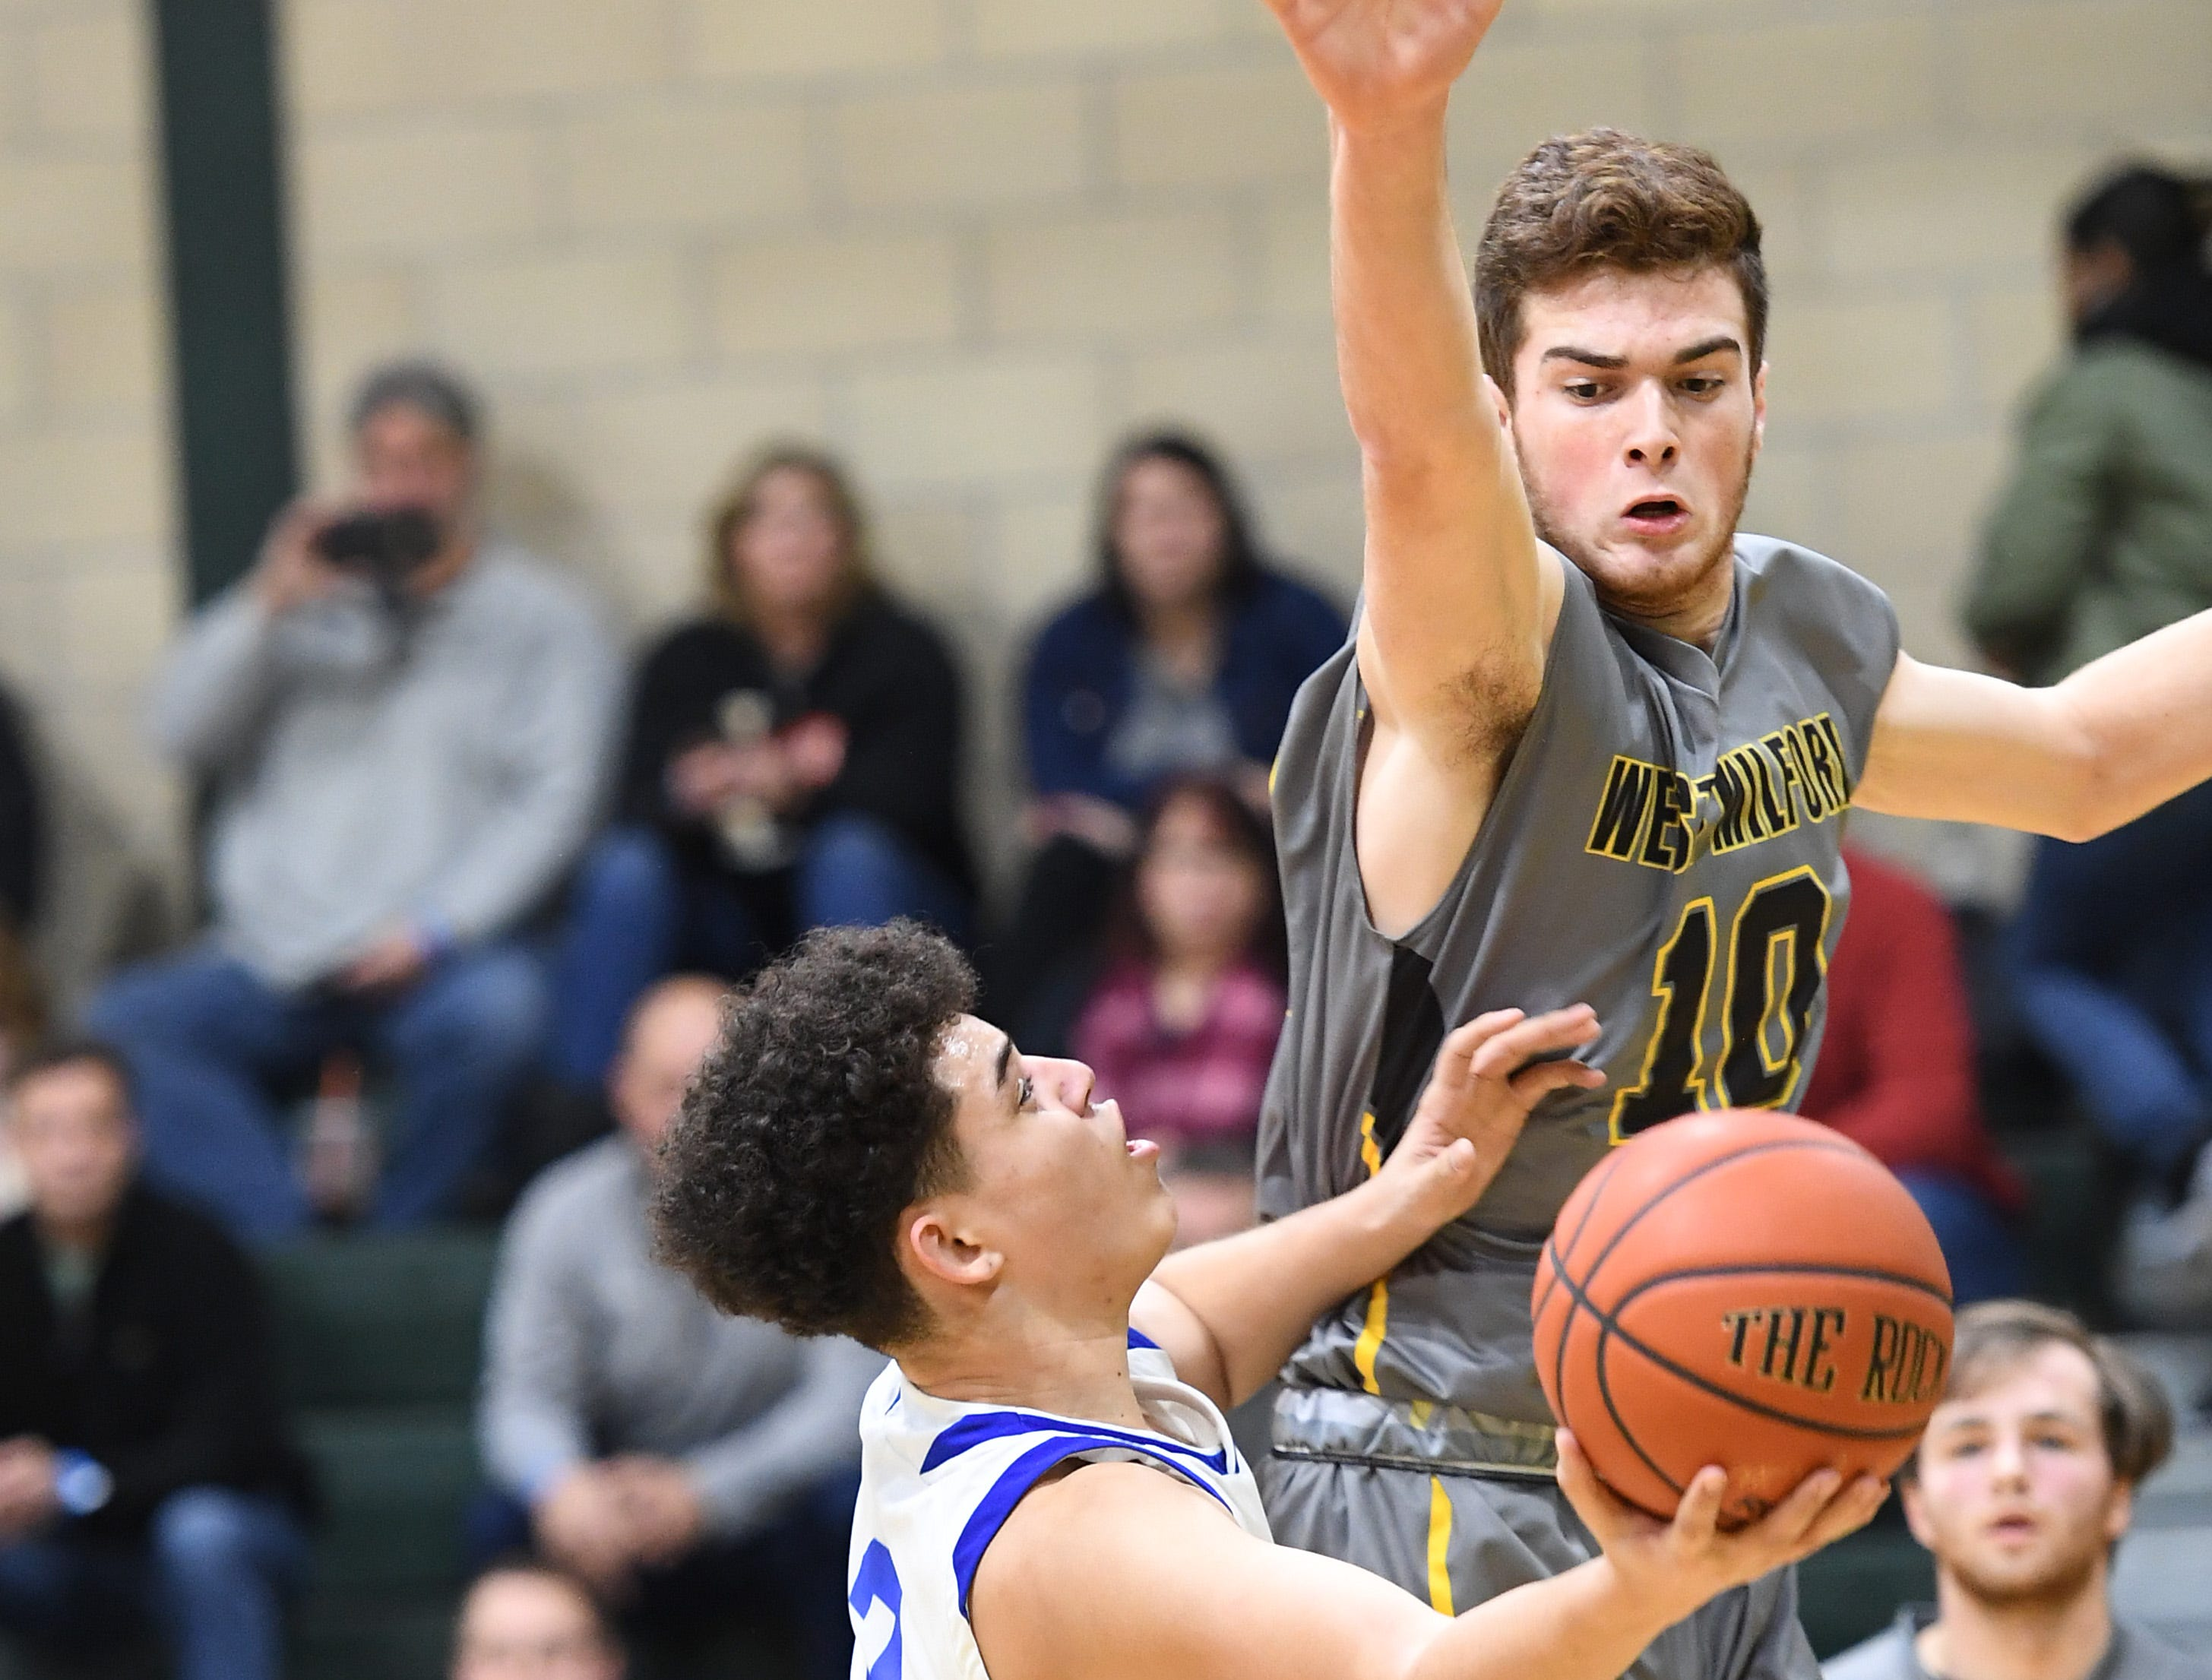 Public vs. Private Basketball Showcase at St. Joseph High School in Montvale on Saturday, January 12, 2019. West Milford vs. St. Mary. SM #3 Rob Carroza drives to the basket as WM #10 Brandon Licursi defends.